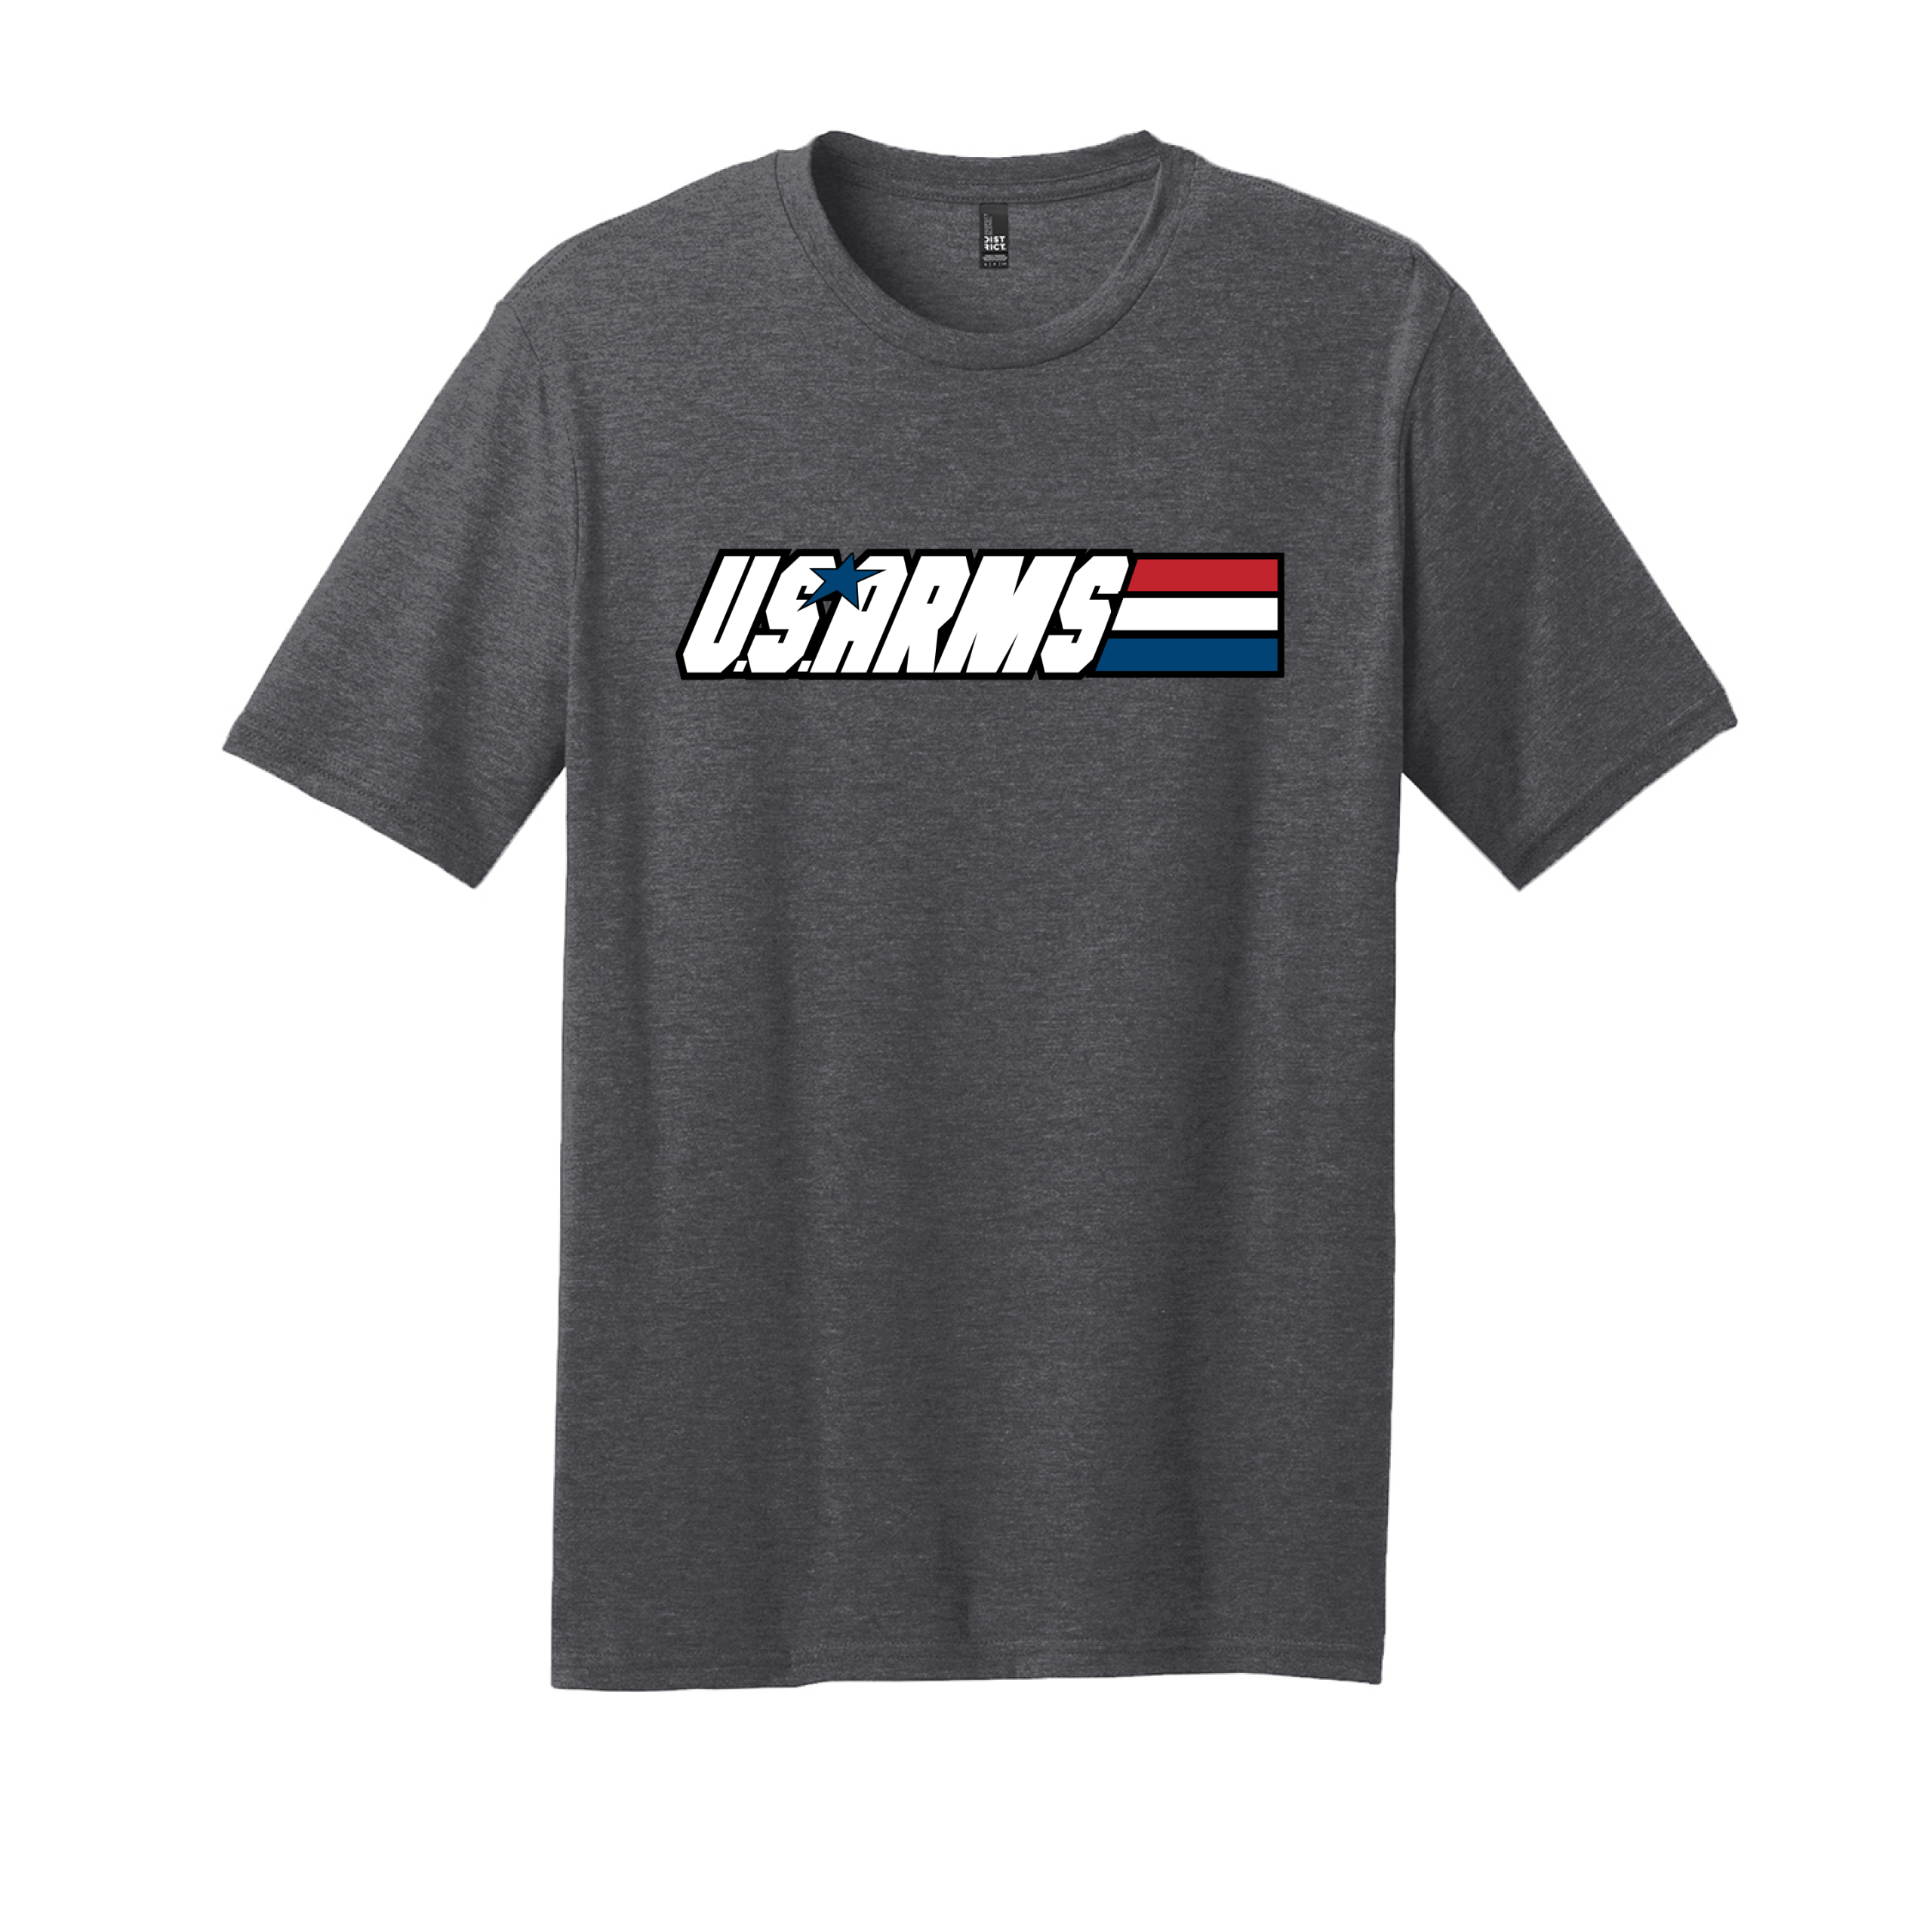 U.S. Arms – Small, Charcoal